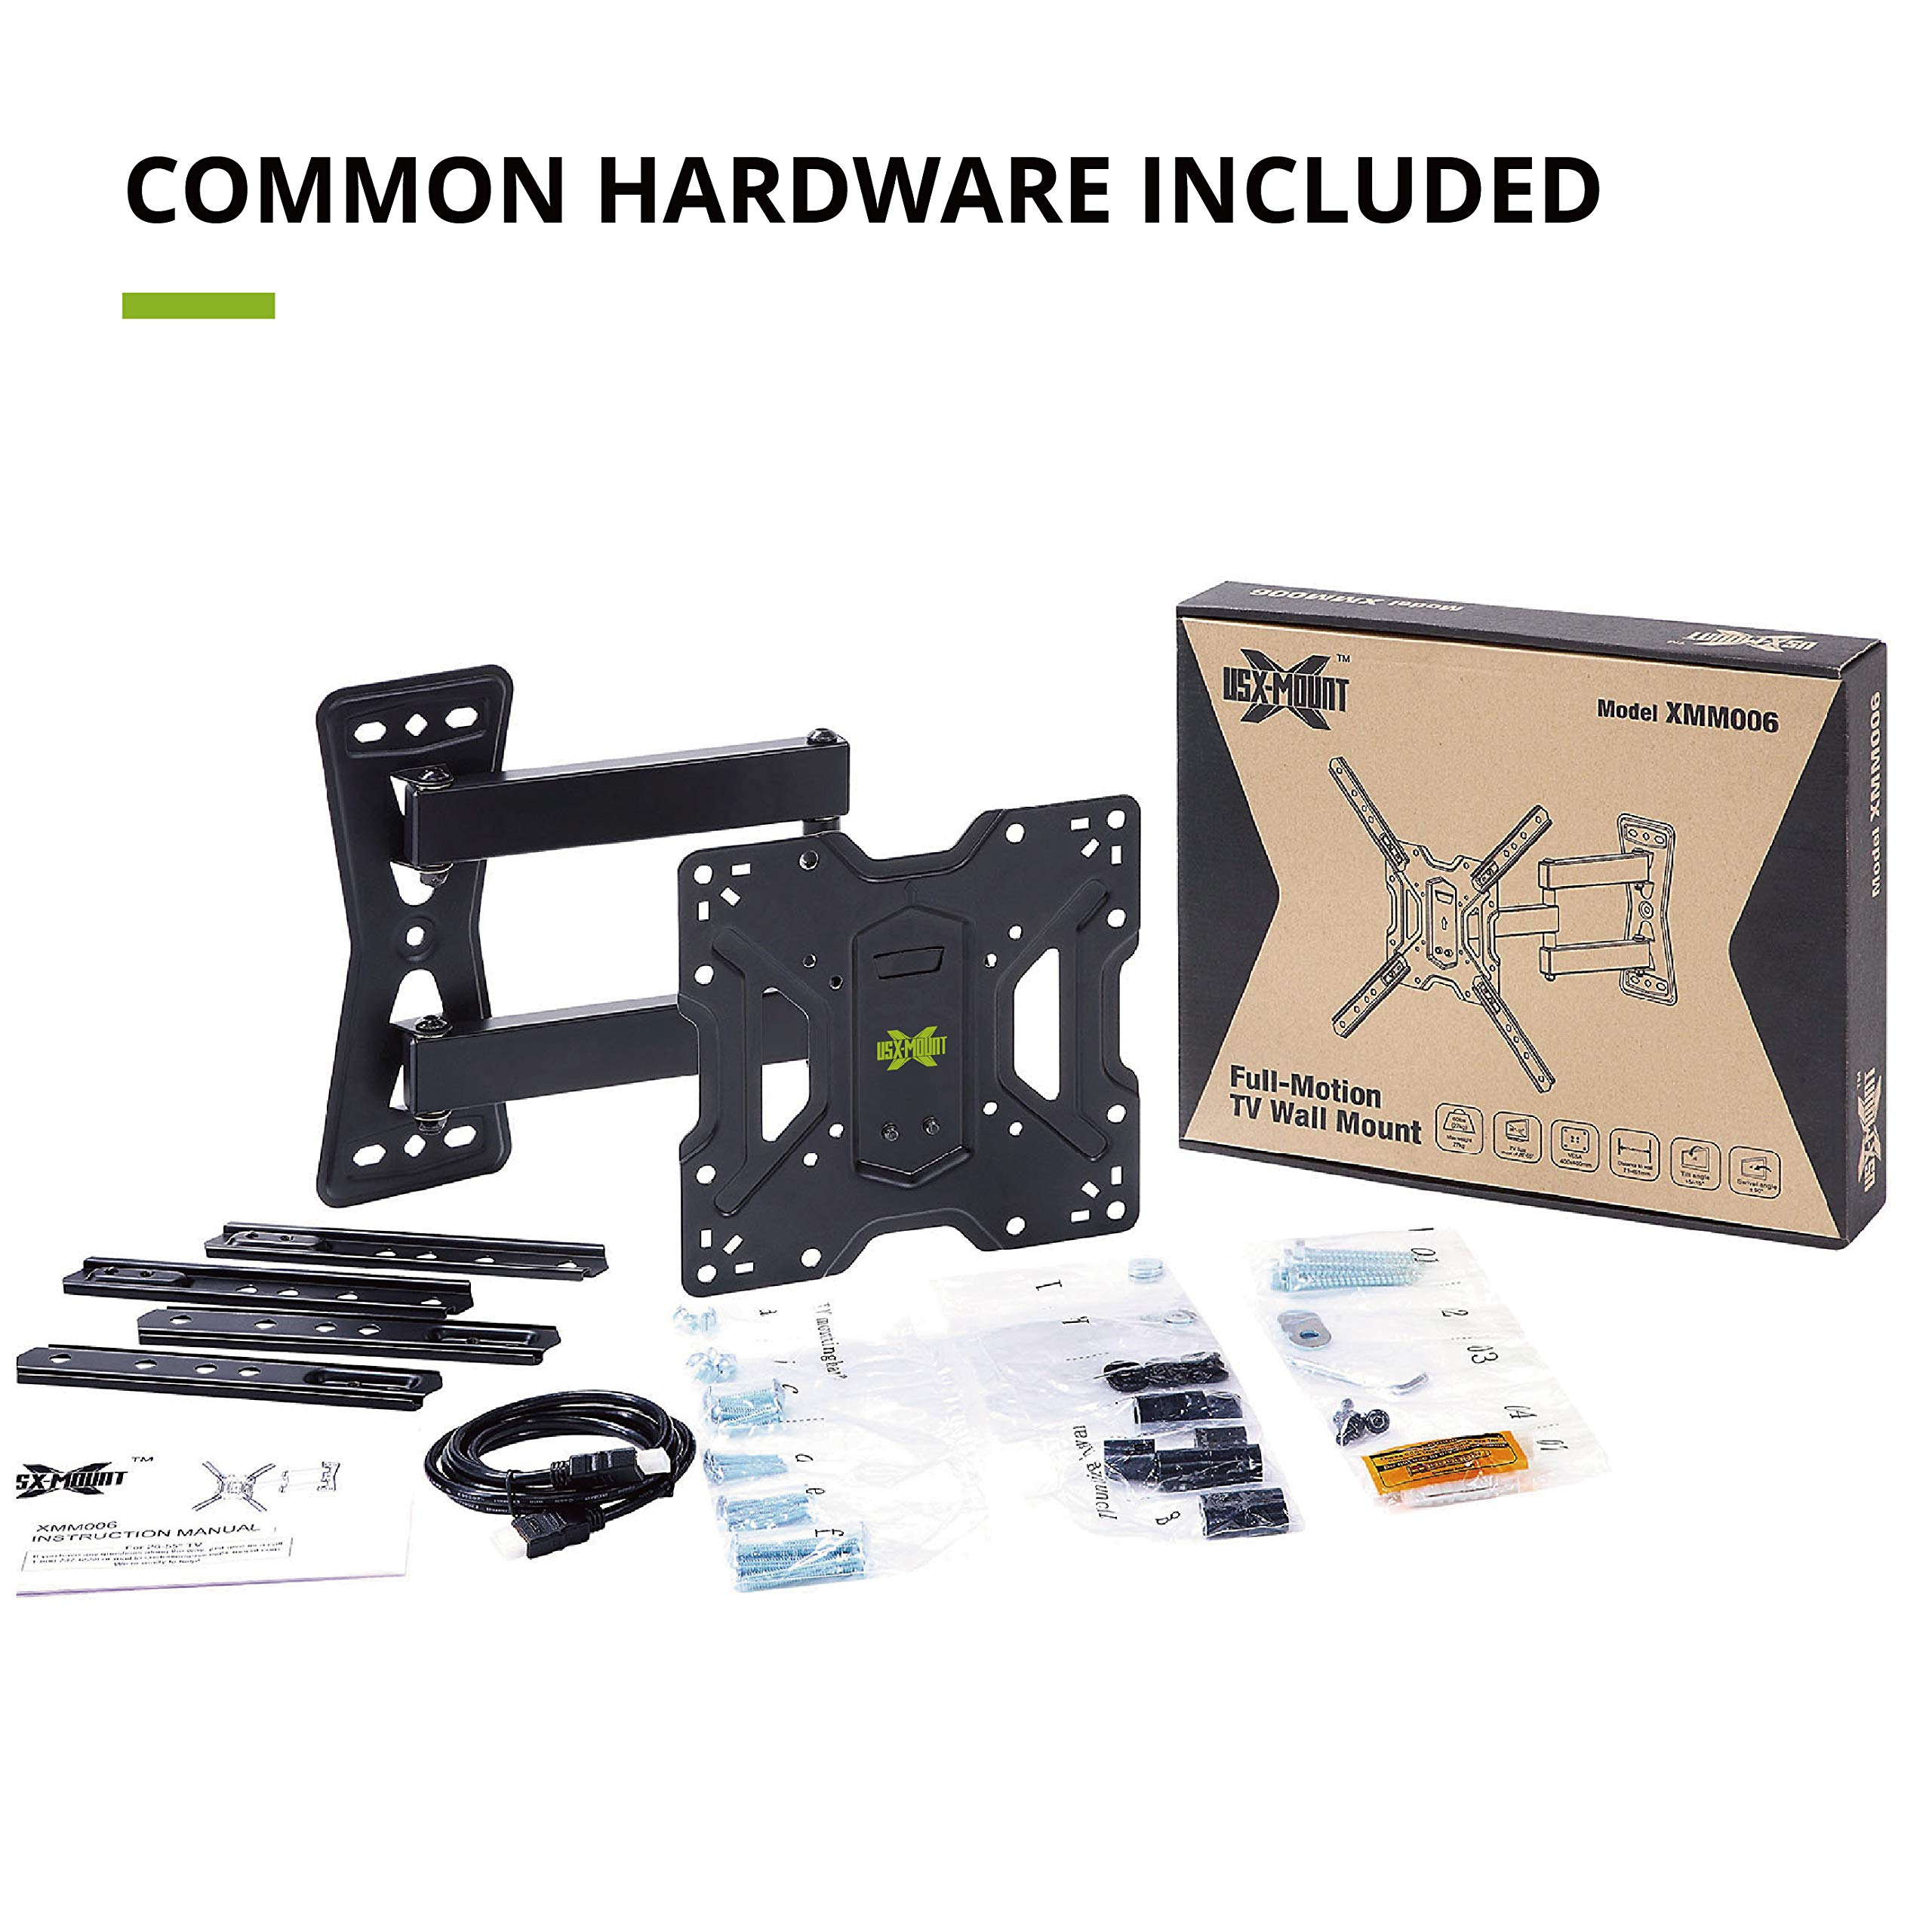 USX MOUNT Full Motion Swivel Articulating Tilt TV Wall Mount Bracket for 26-55'' LED, OLED, 4K TVs-Fit for 32, 40, 50 TV with VESA Up to 400x400mm-Weight Capacity Up to 60lbs by USX MOUNT (Image #4)